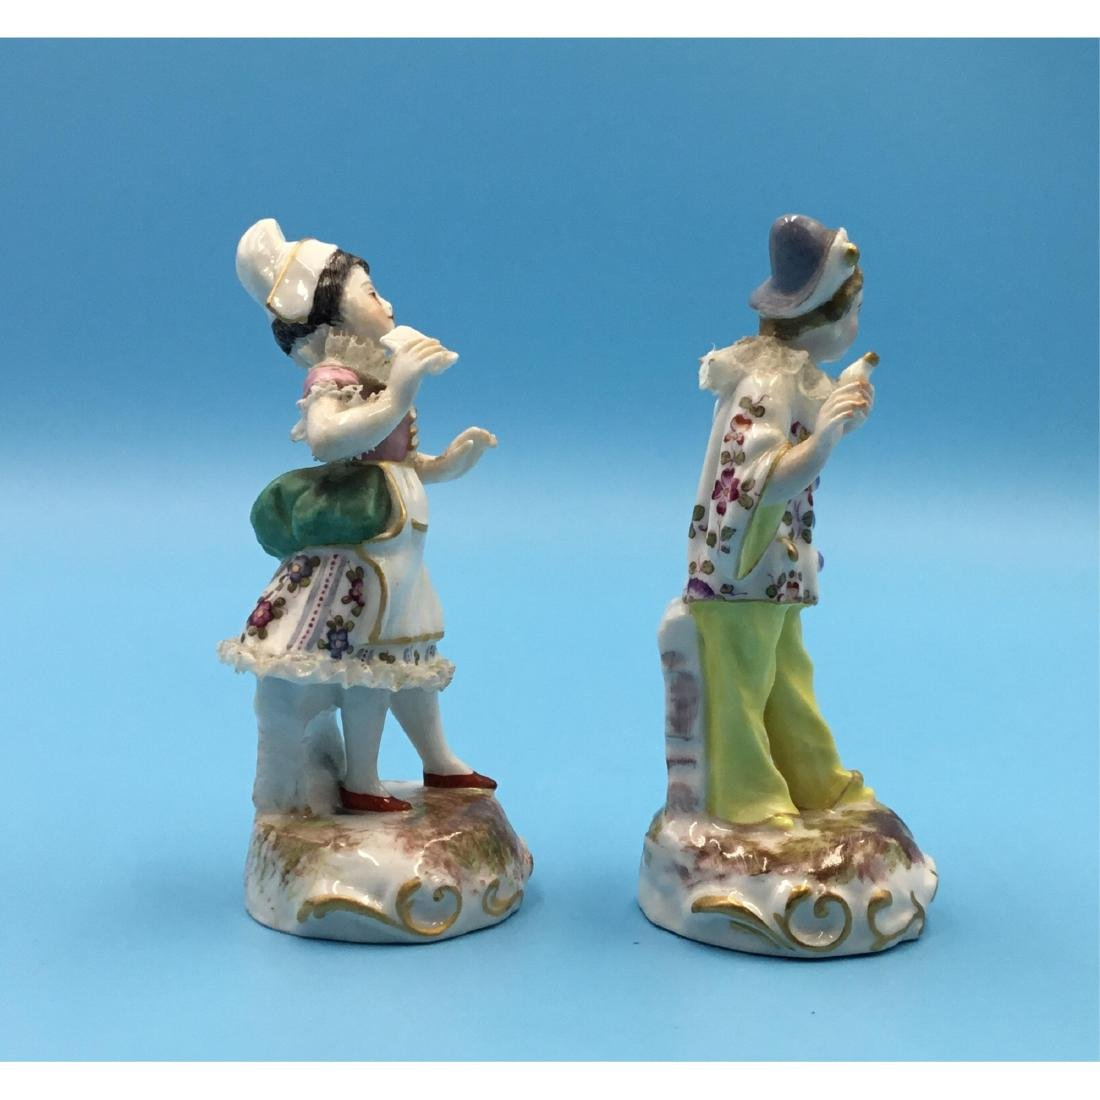 PAIR FRENCH 19TH C. MINIATURE PORCELAIN FIGURINES - 4